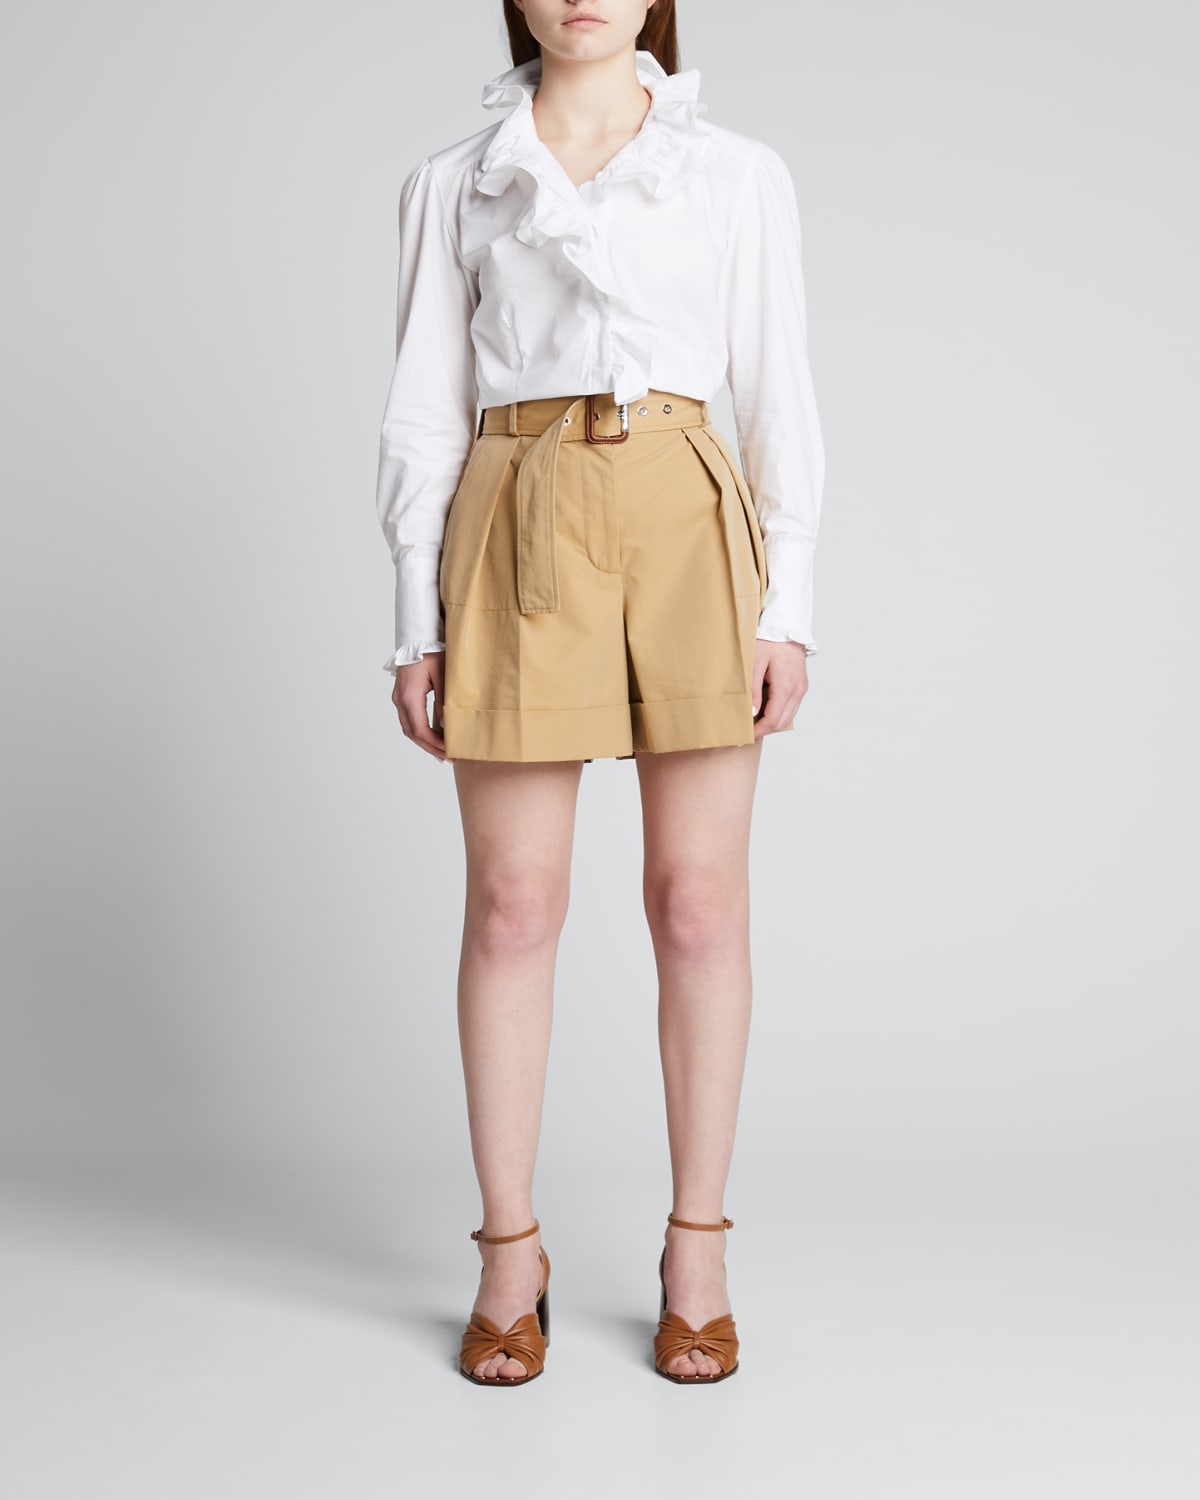 Anne Ruffle Button-Front Blouse